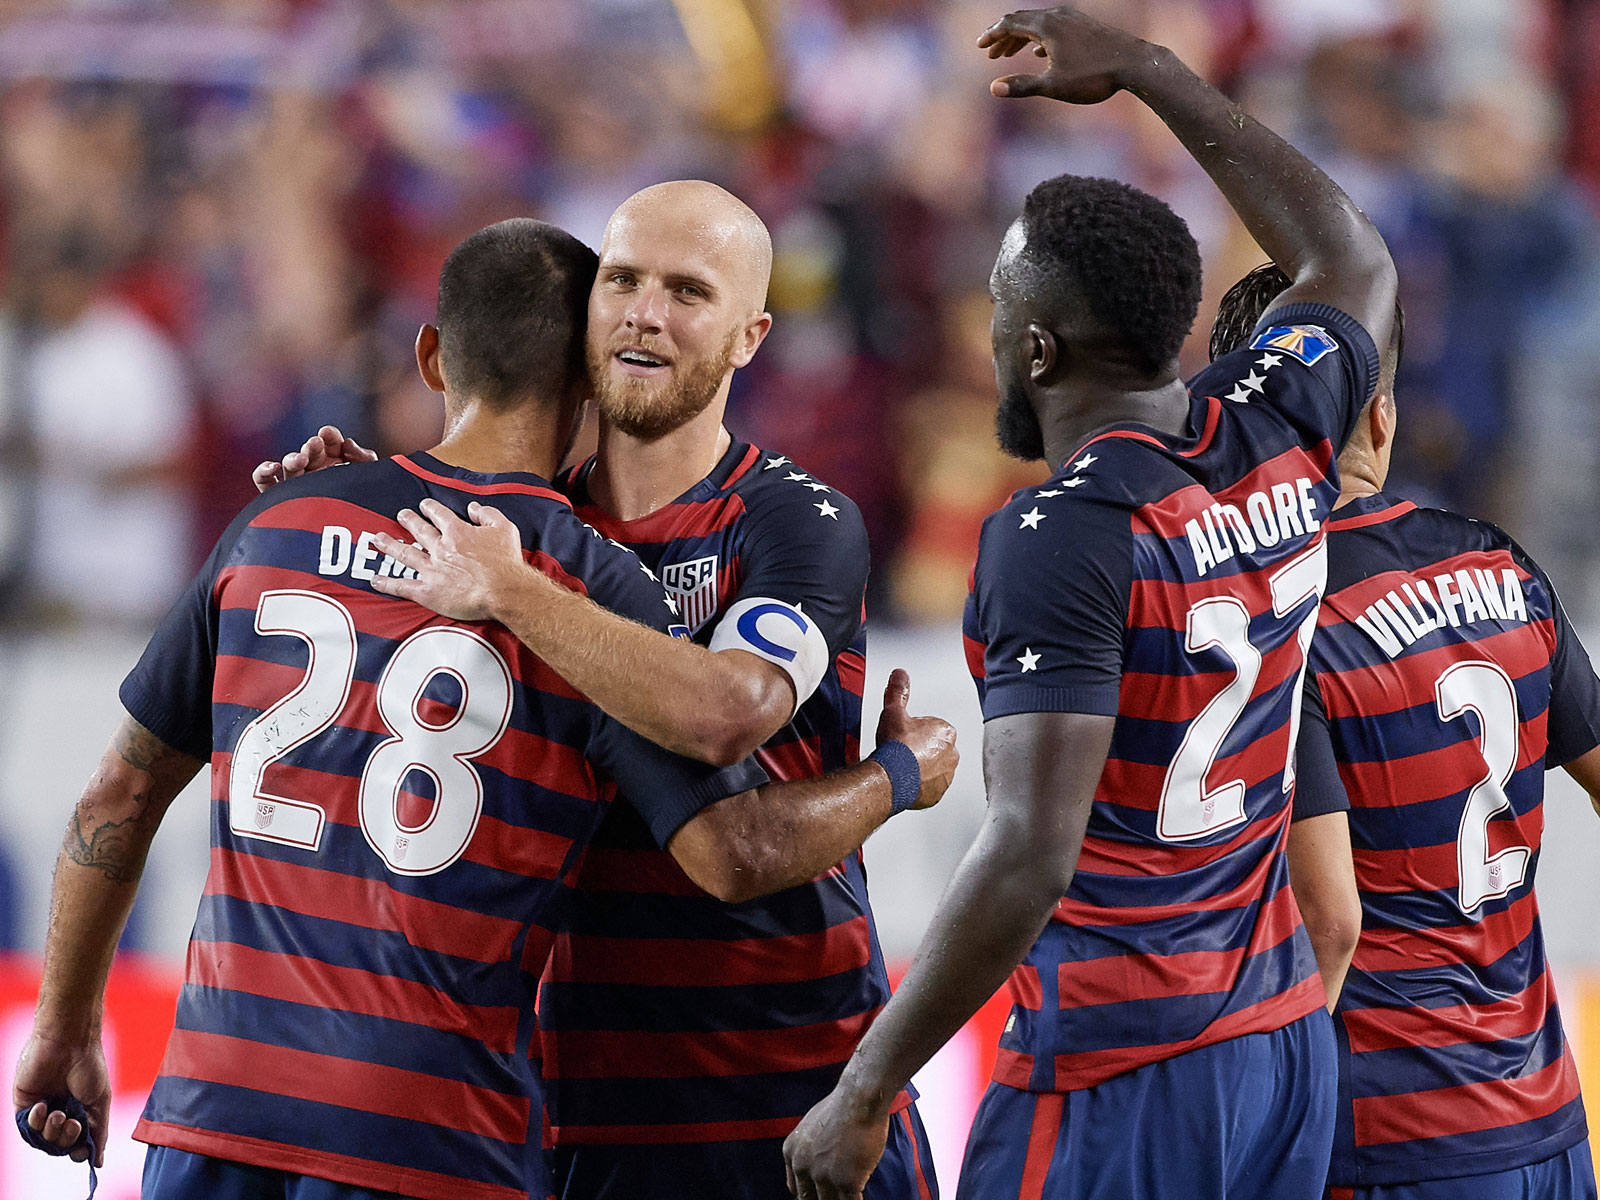 Michael Bradley, Jozy Altidore and Clint Dempsey lead the USA into World Cup qualifying